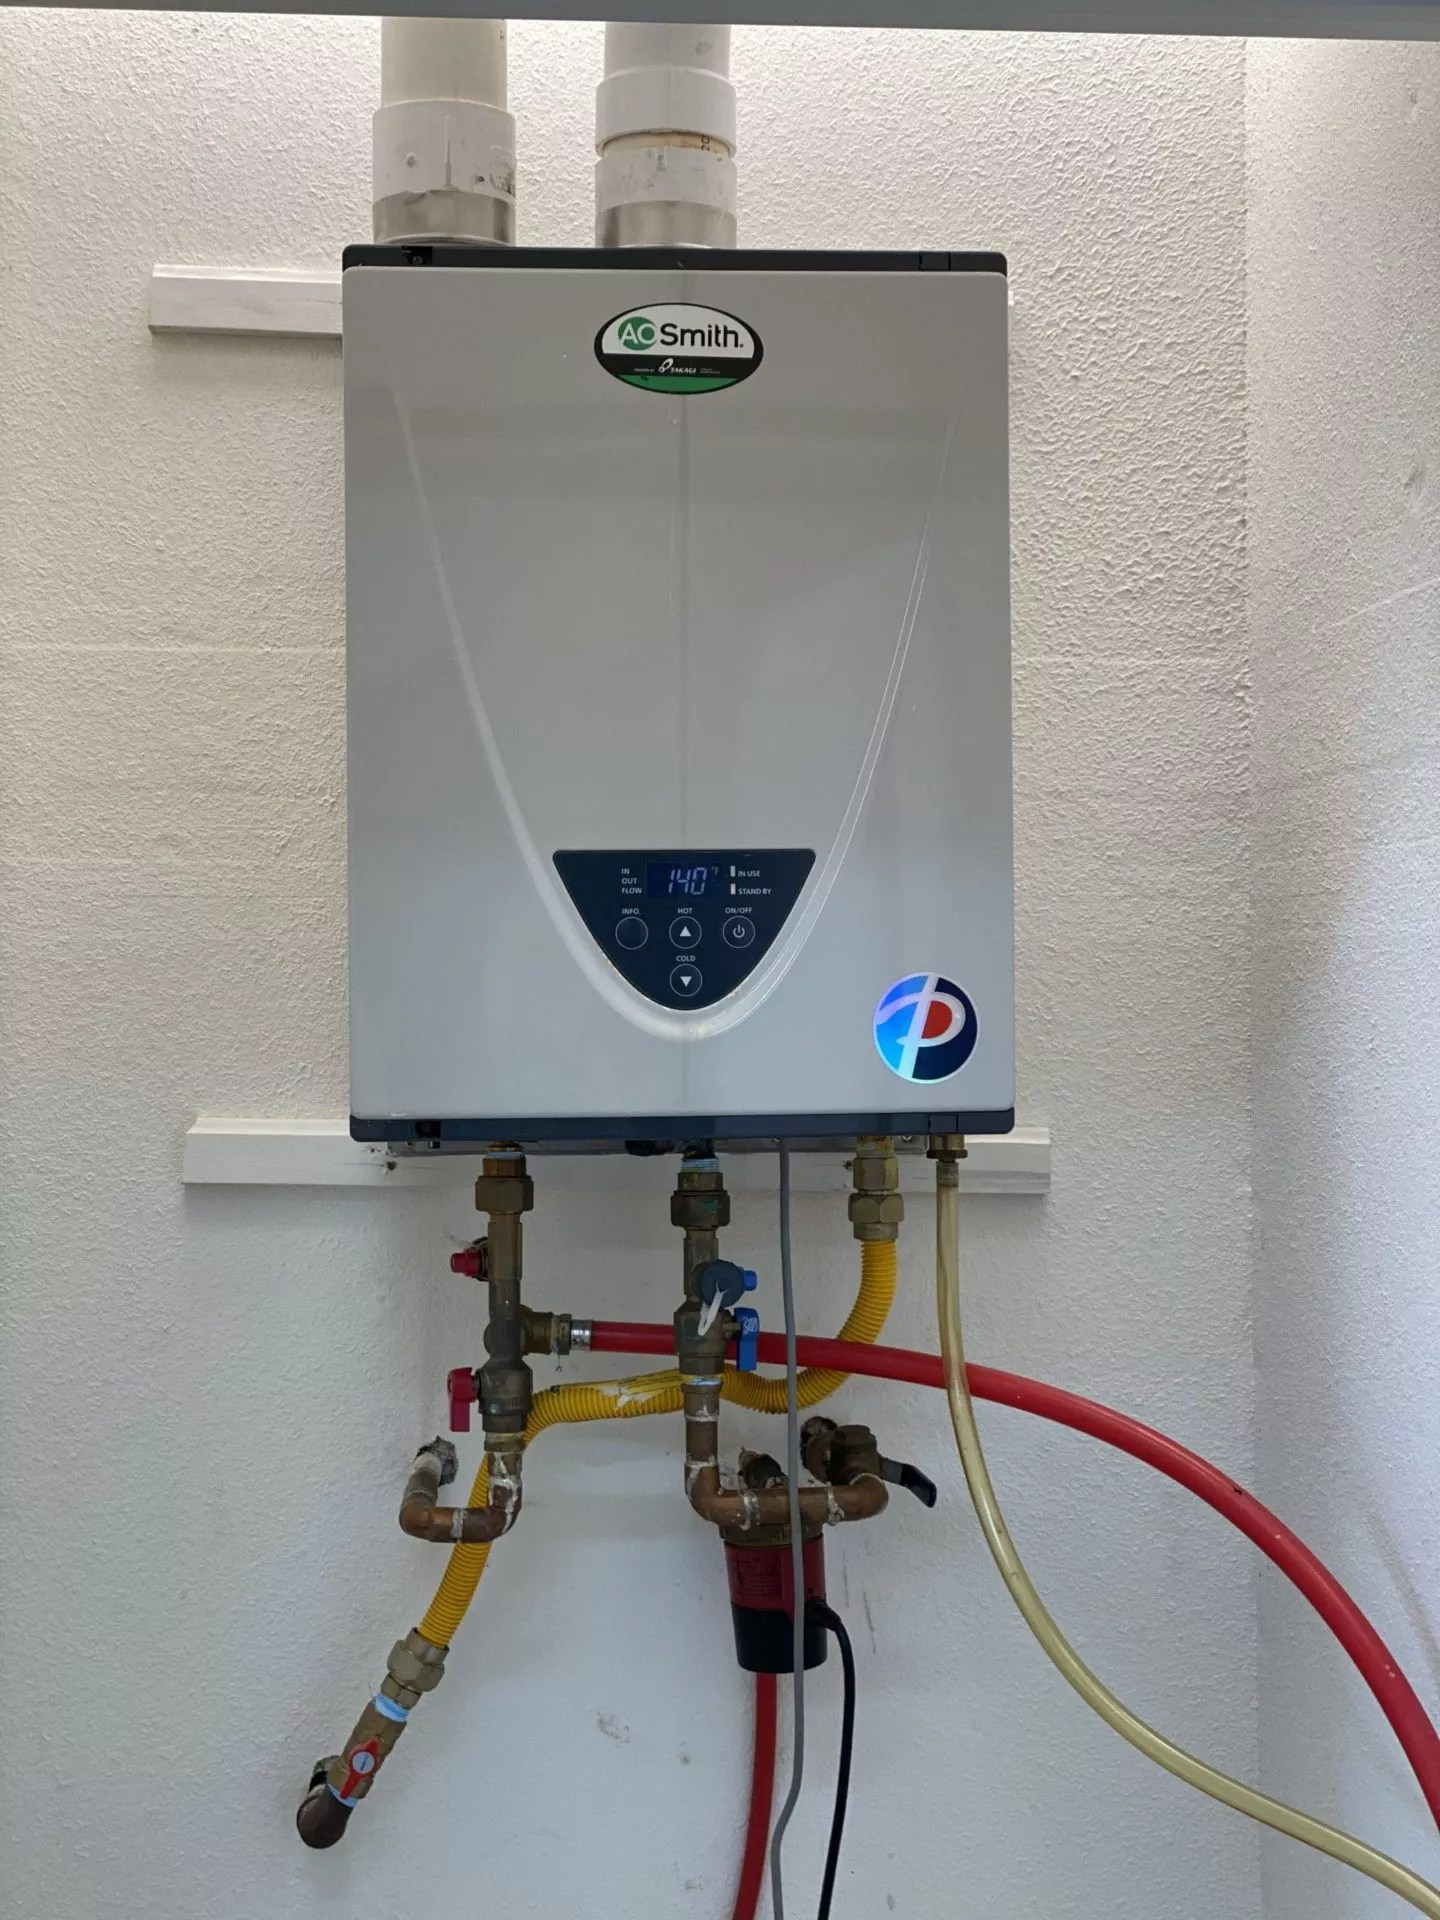 Takagi Tankless Water Heater Reset Button : takagi, tankless, water, heater, reset, button, Tankless, Water, Heater, Working?, Here's, Check, Paschal, Plumbing, Electric